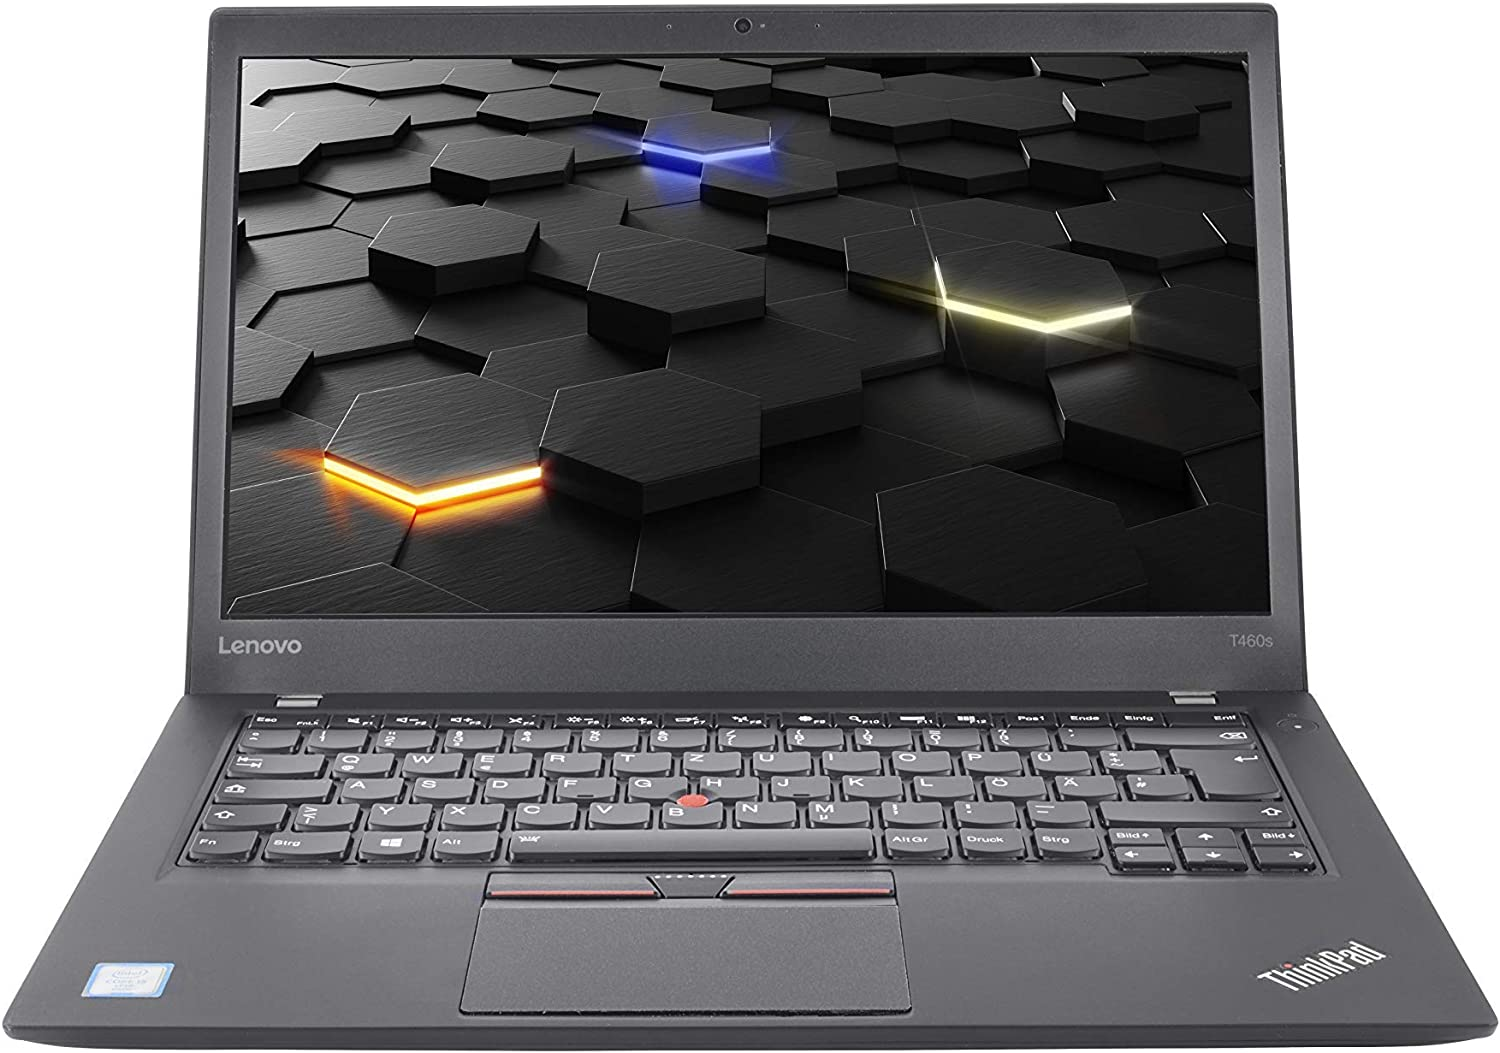 Lenovo ThinkPad T460s i5 (6.Gen) – 14 pulgadas, 12 GB de RAM, 500 GB SSD, FHD IPS, HDMI, cámara, Backlight – Ultrabook (reacondicionado)